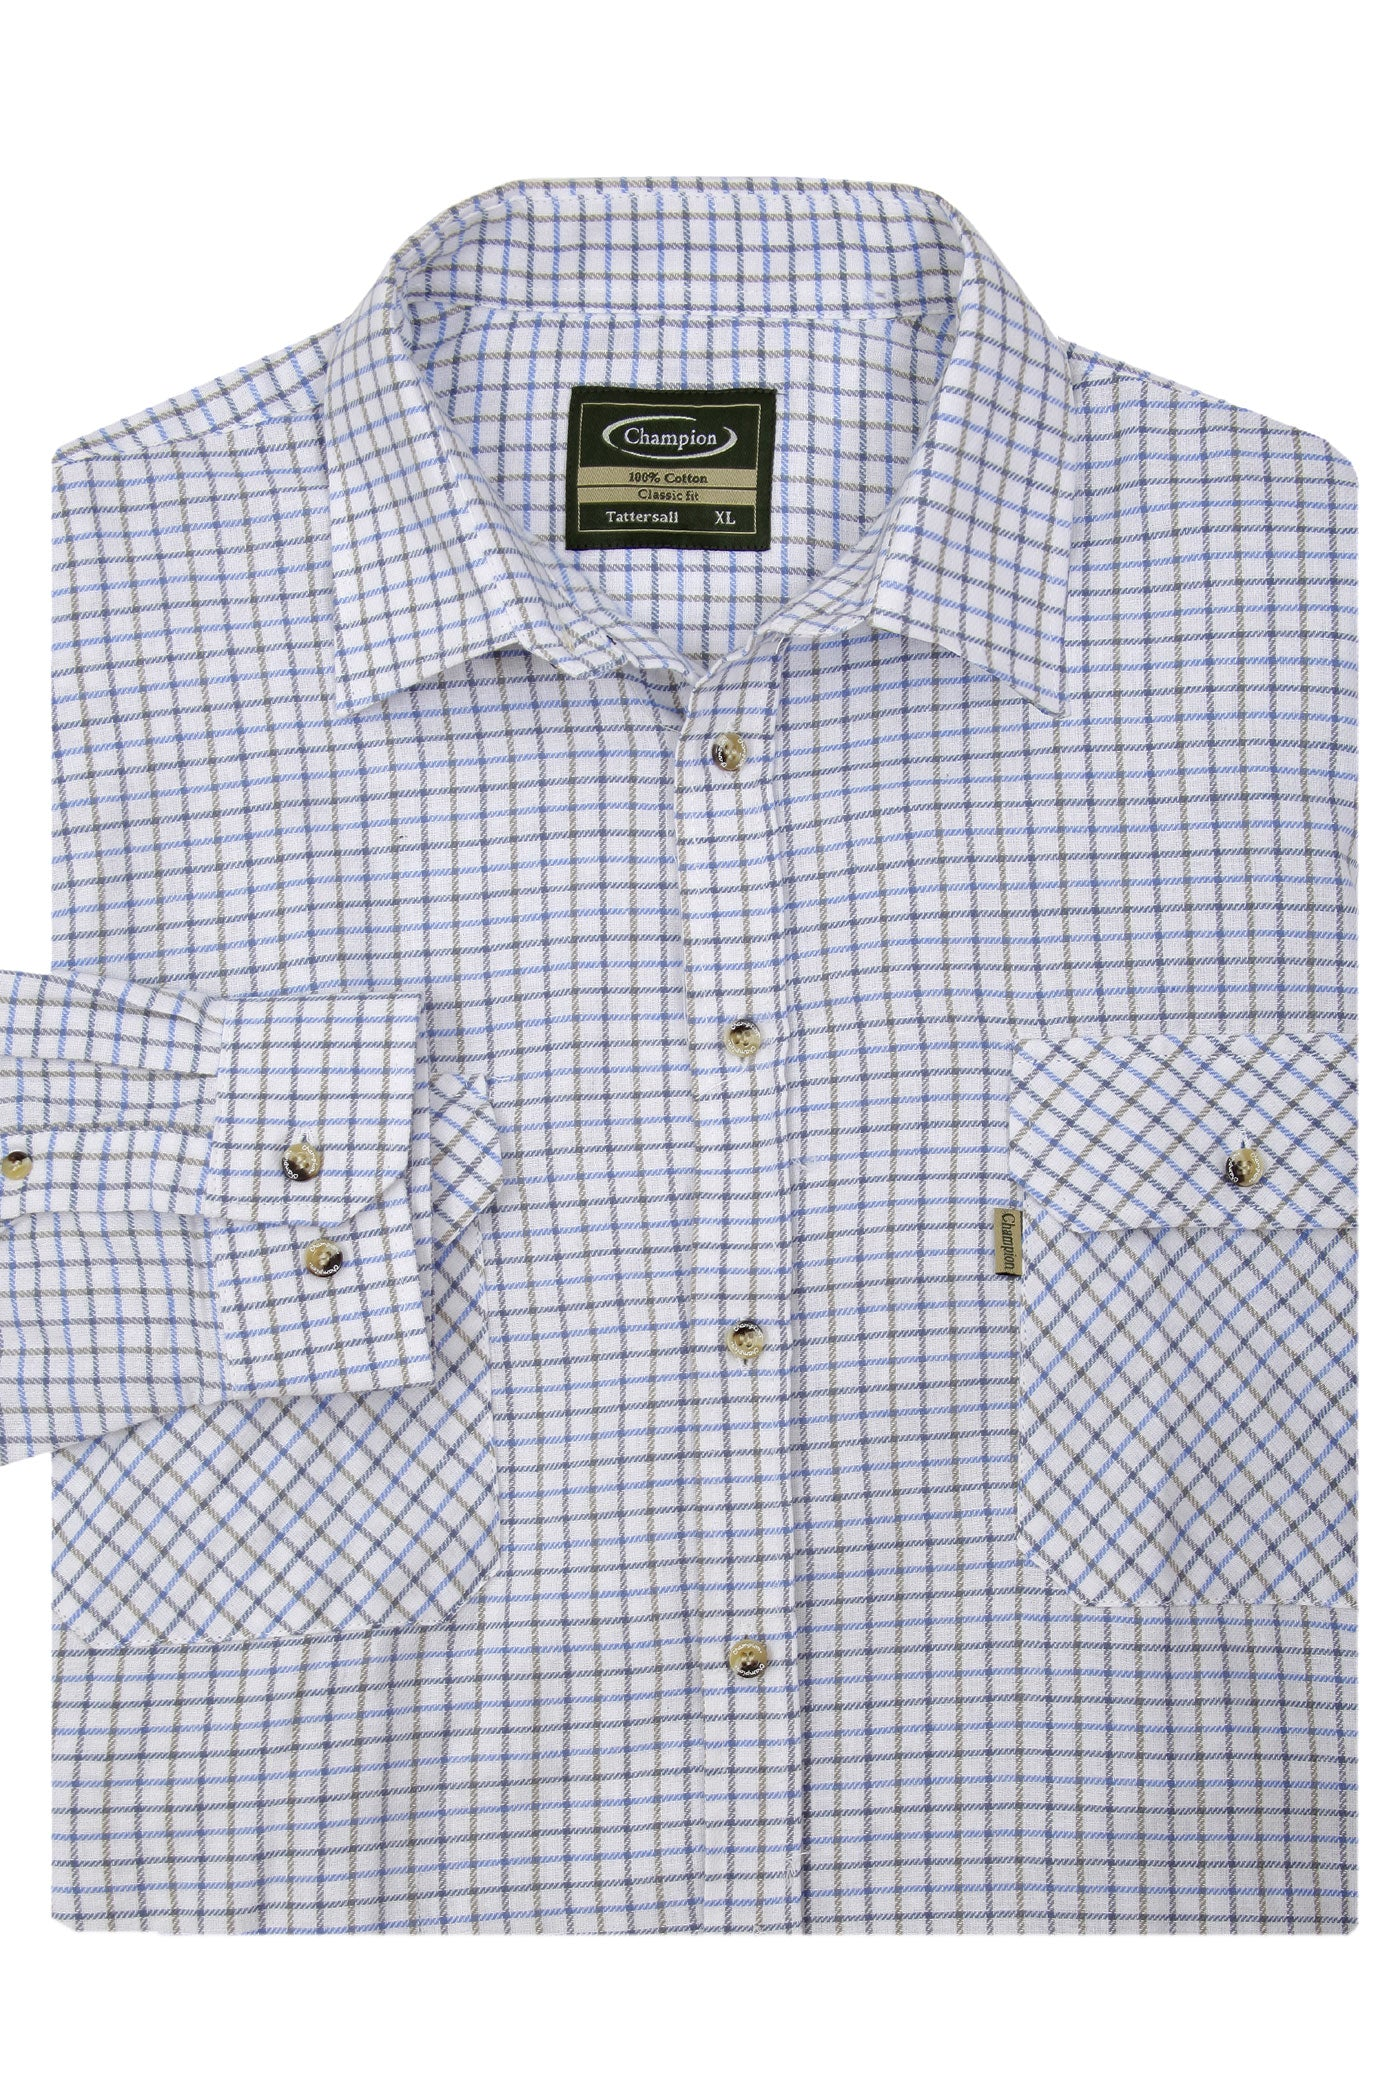 blue Champion Tattersall Shirt, the classic country check shirt